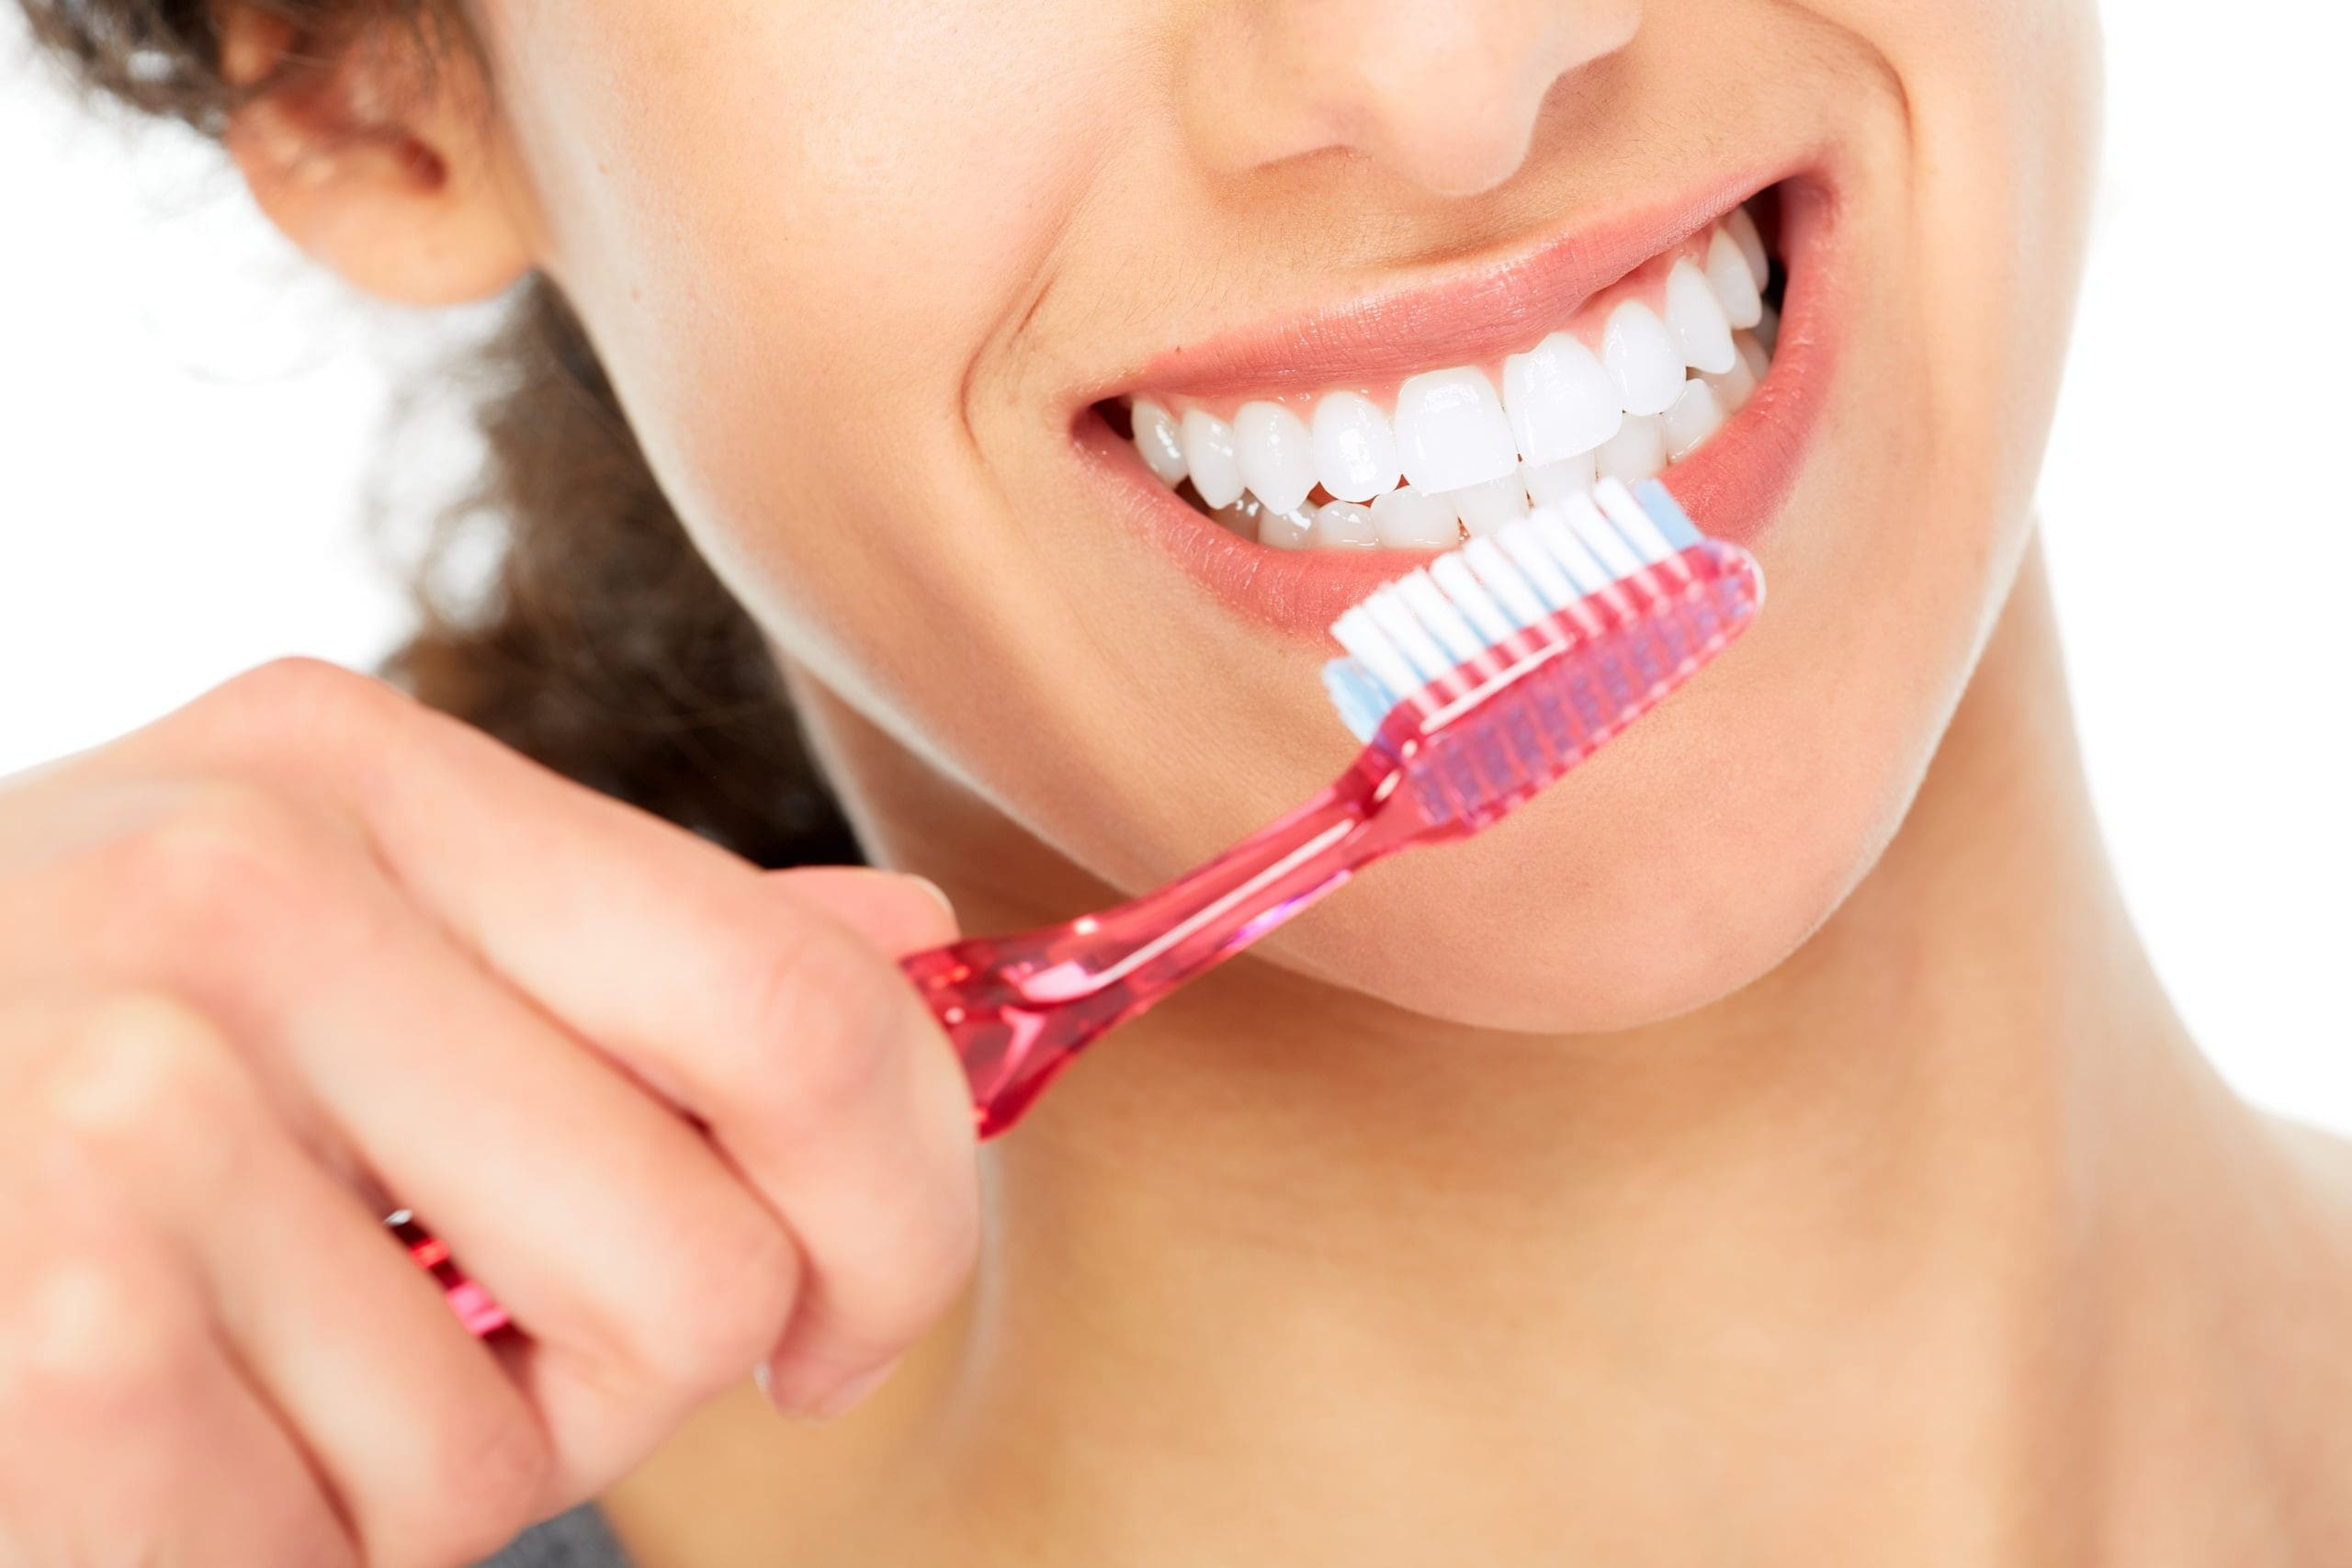 close up of a woman using a toothbrush on her teeth.